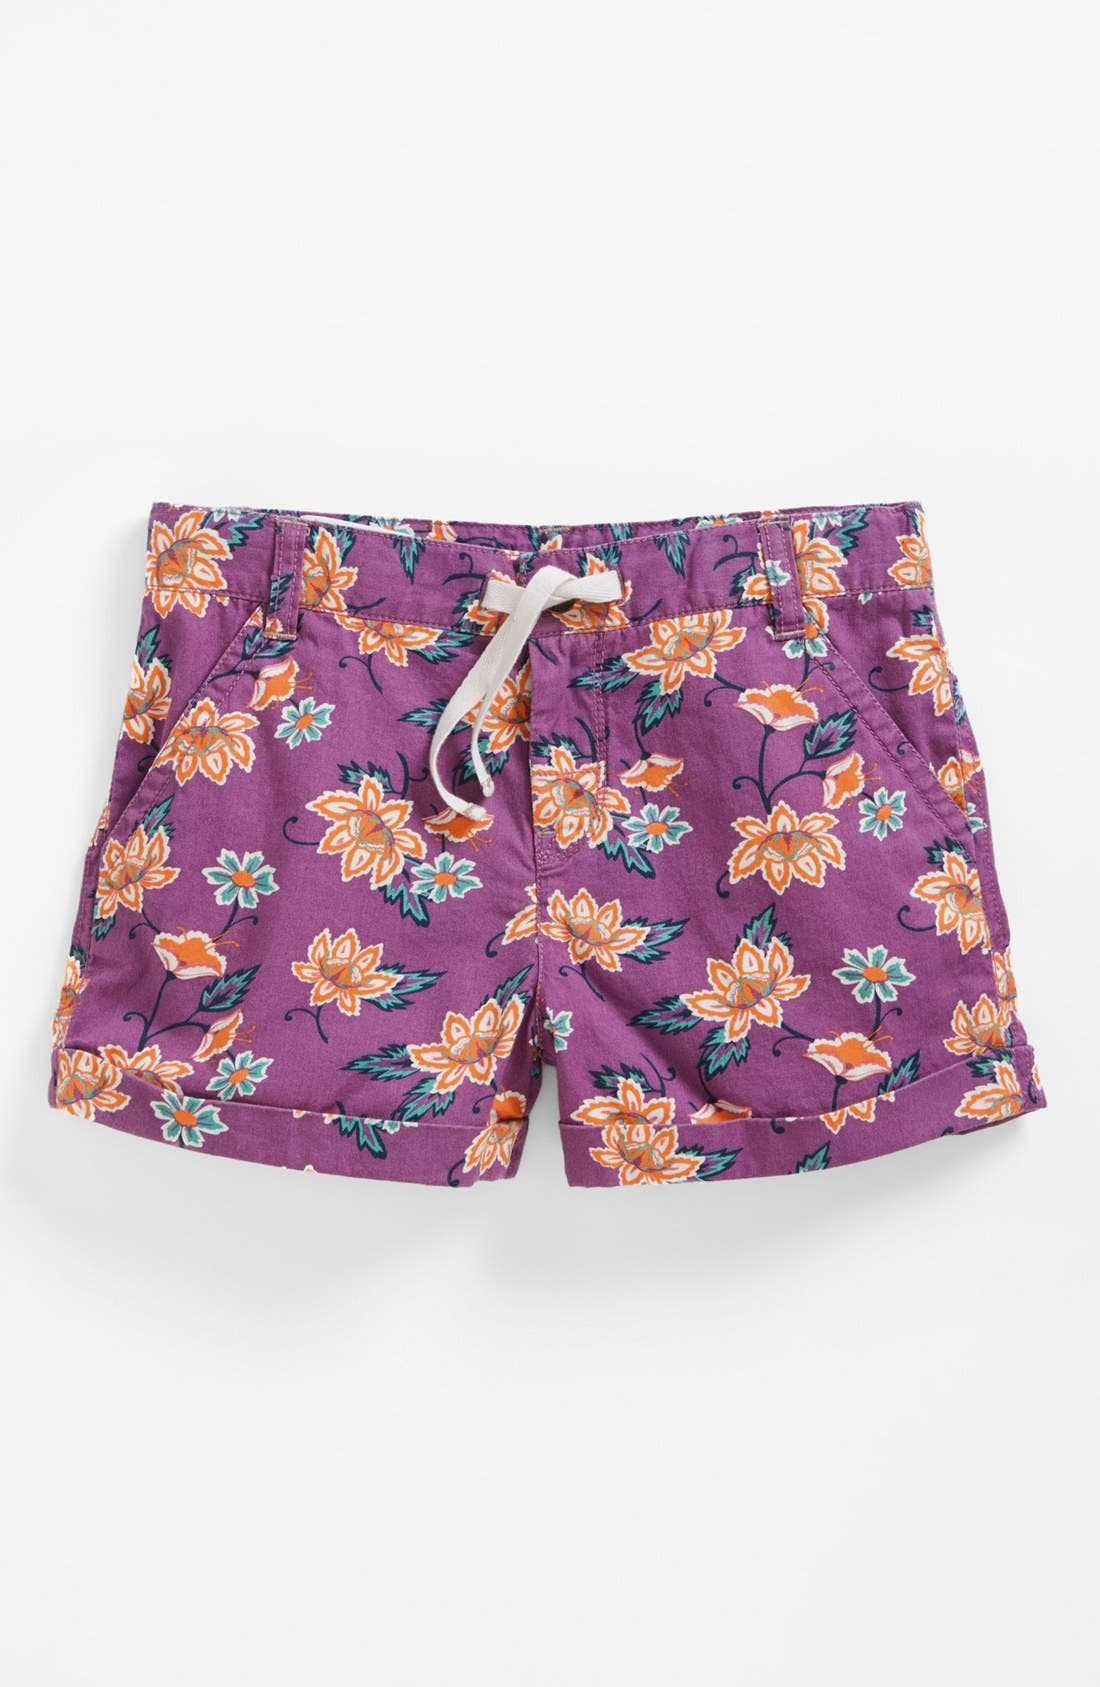 Alternate Image 1 Selected - Tucker + Tate Print Shorts (Little Girls & Big Girls)